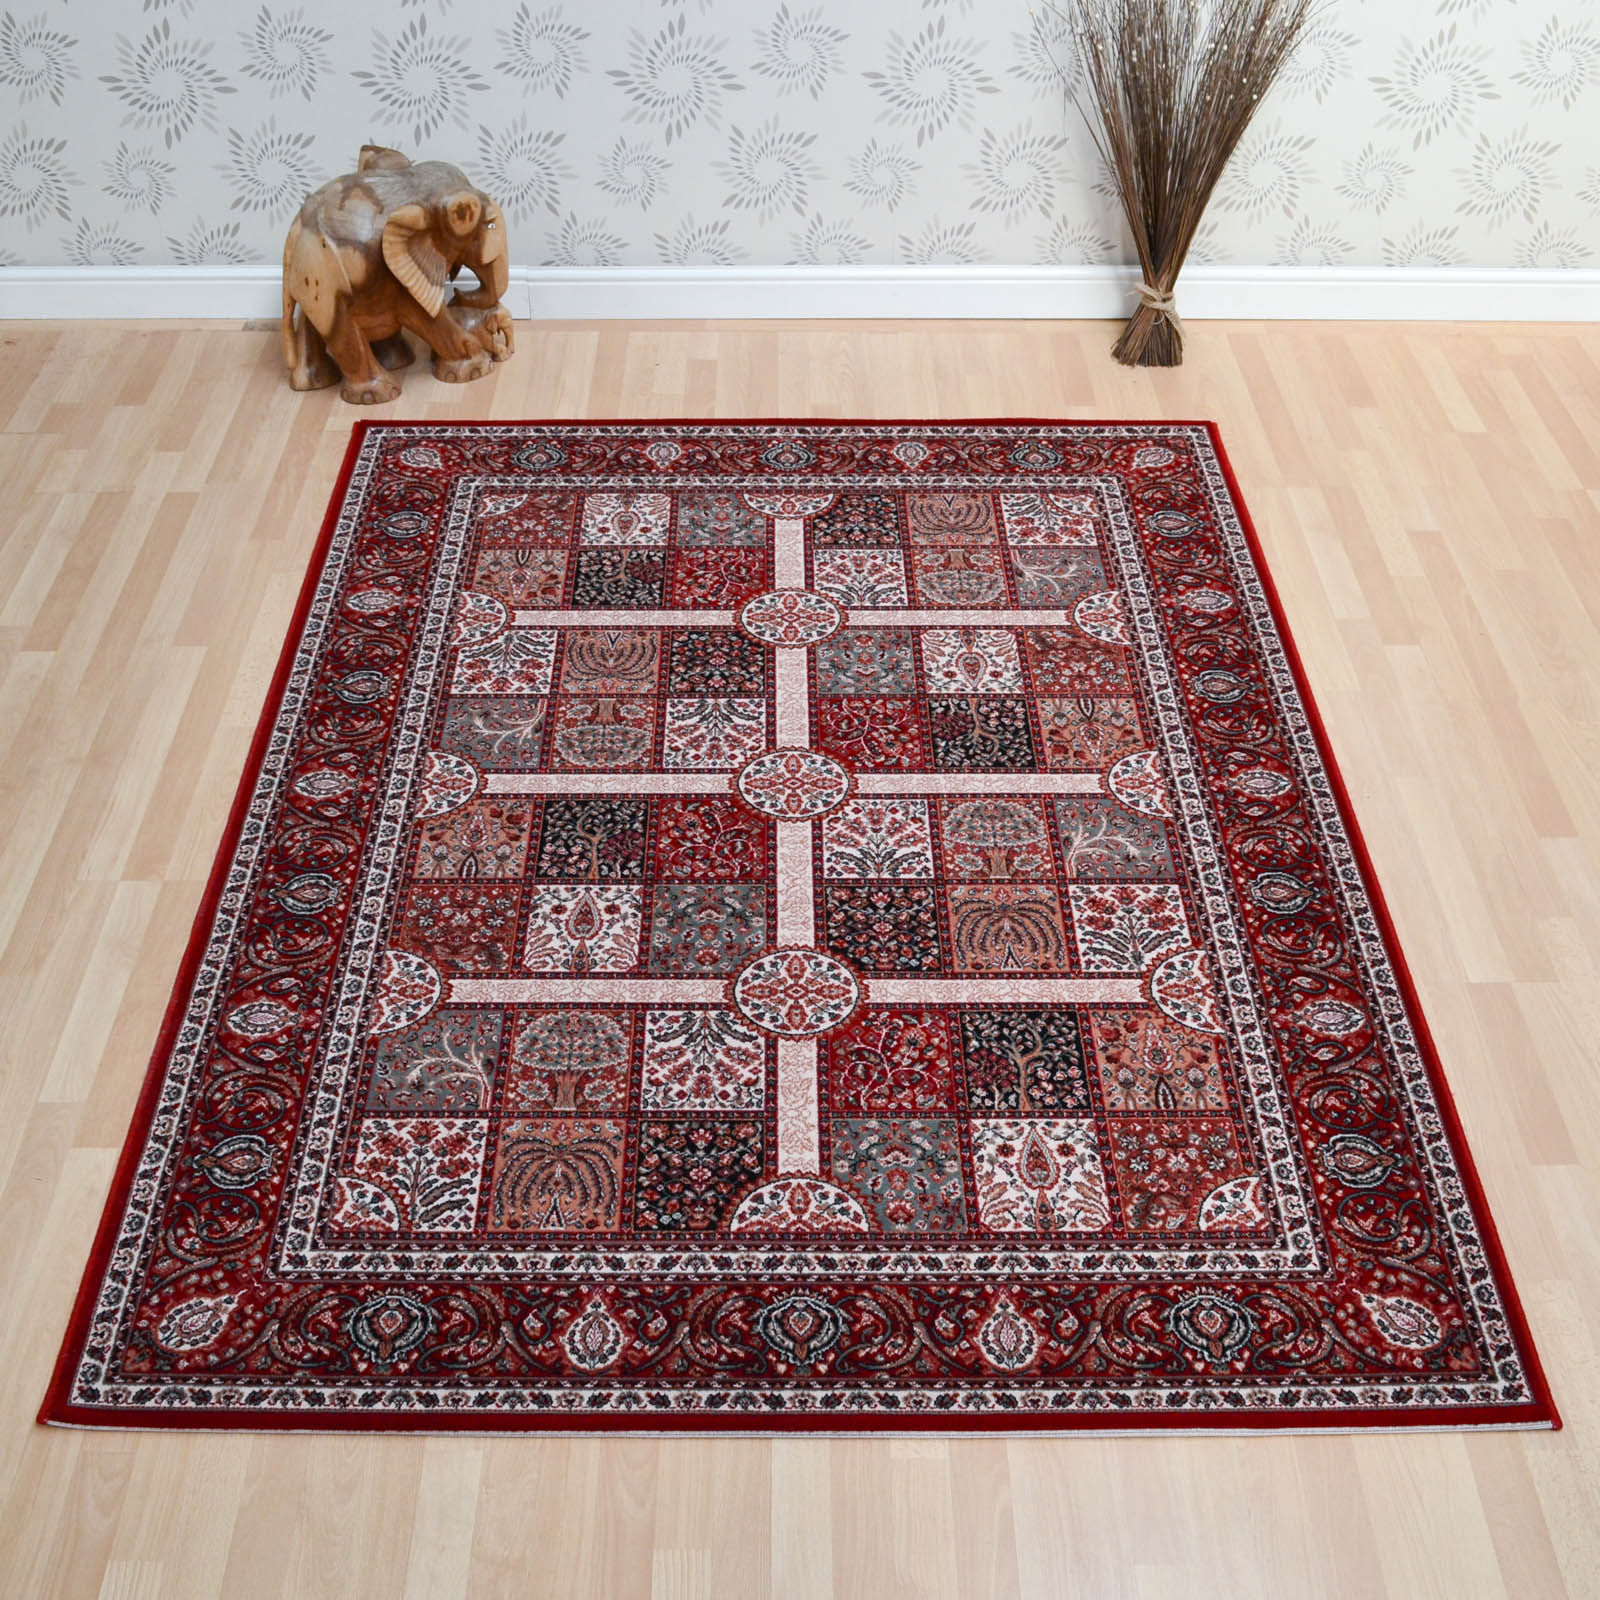 Lano Imperial Rugs 1963 677 in Red